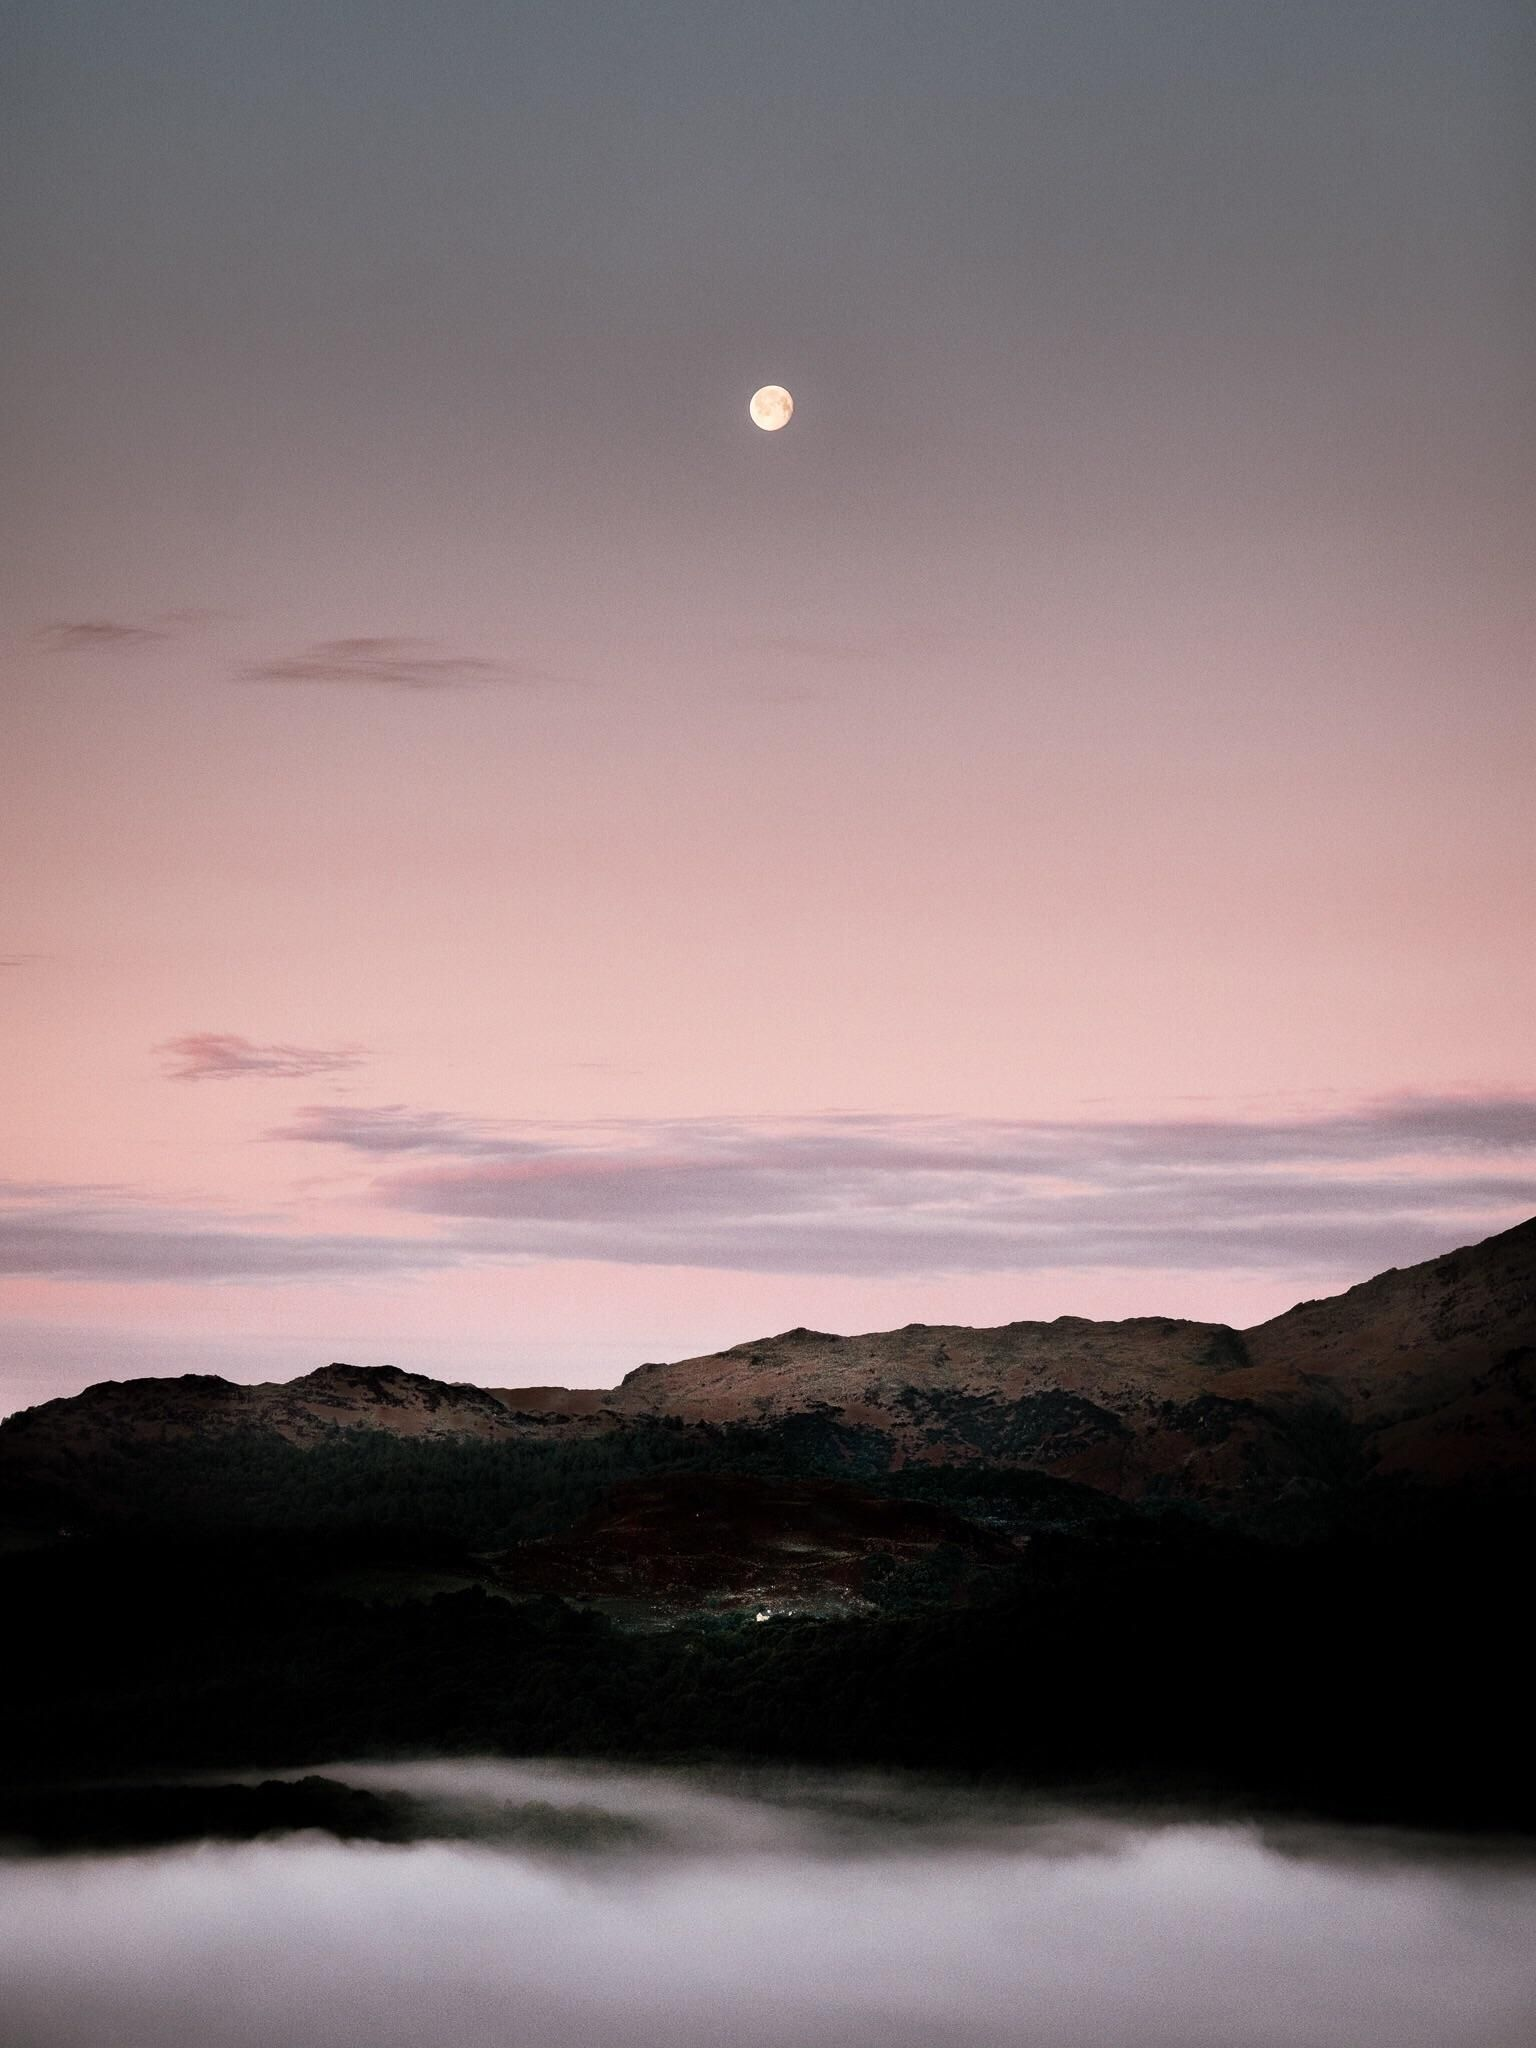 moonrise over the lakeland mountains [oc] [1536x2048] want an i